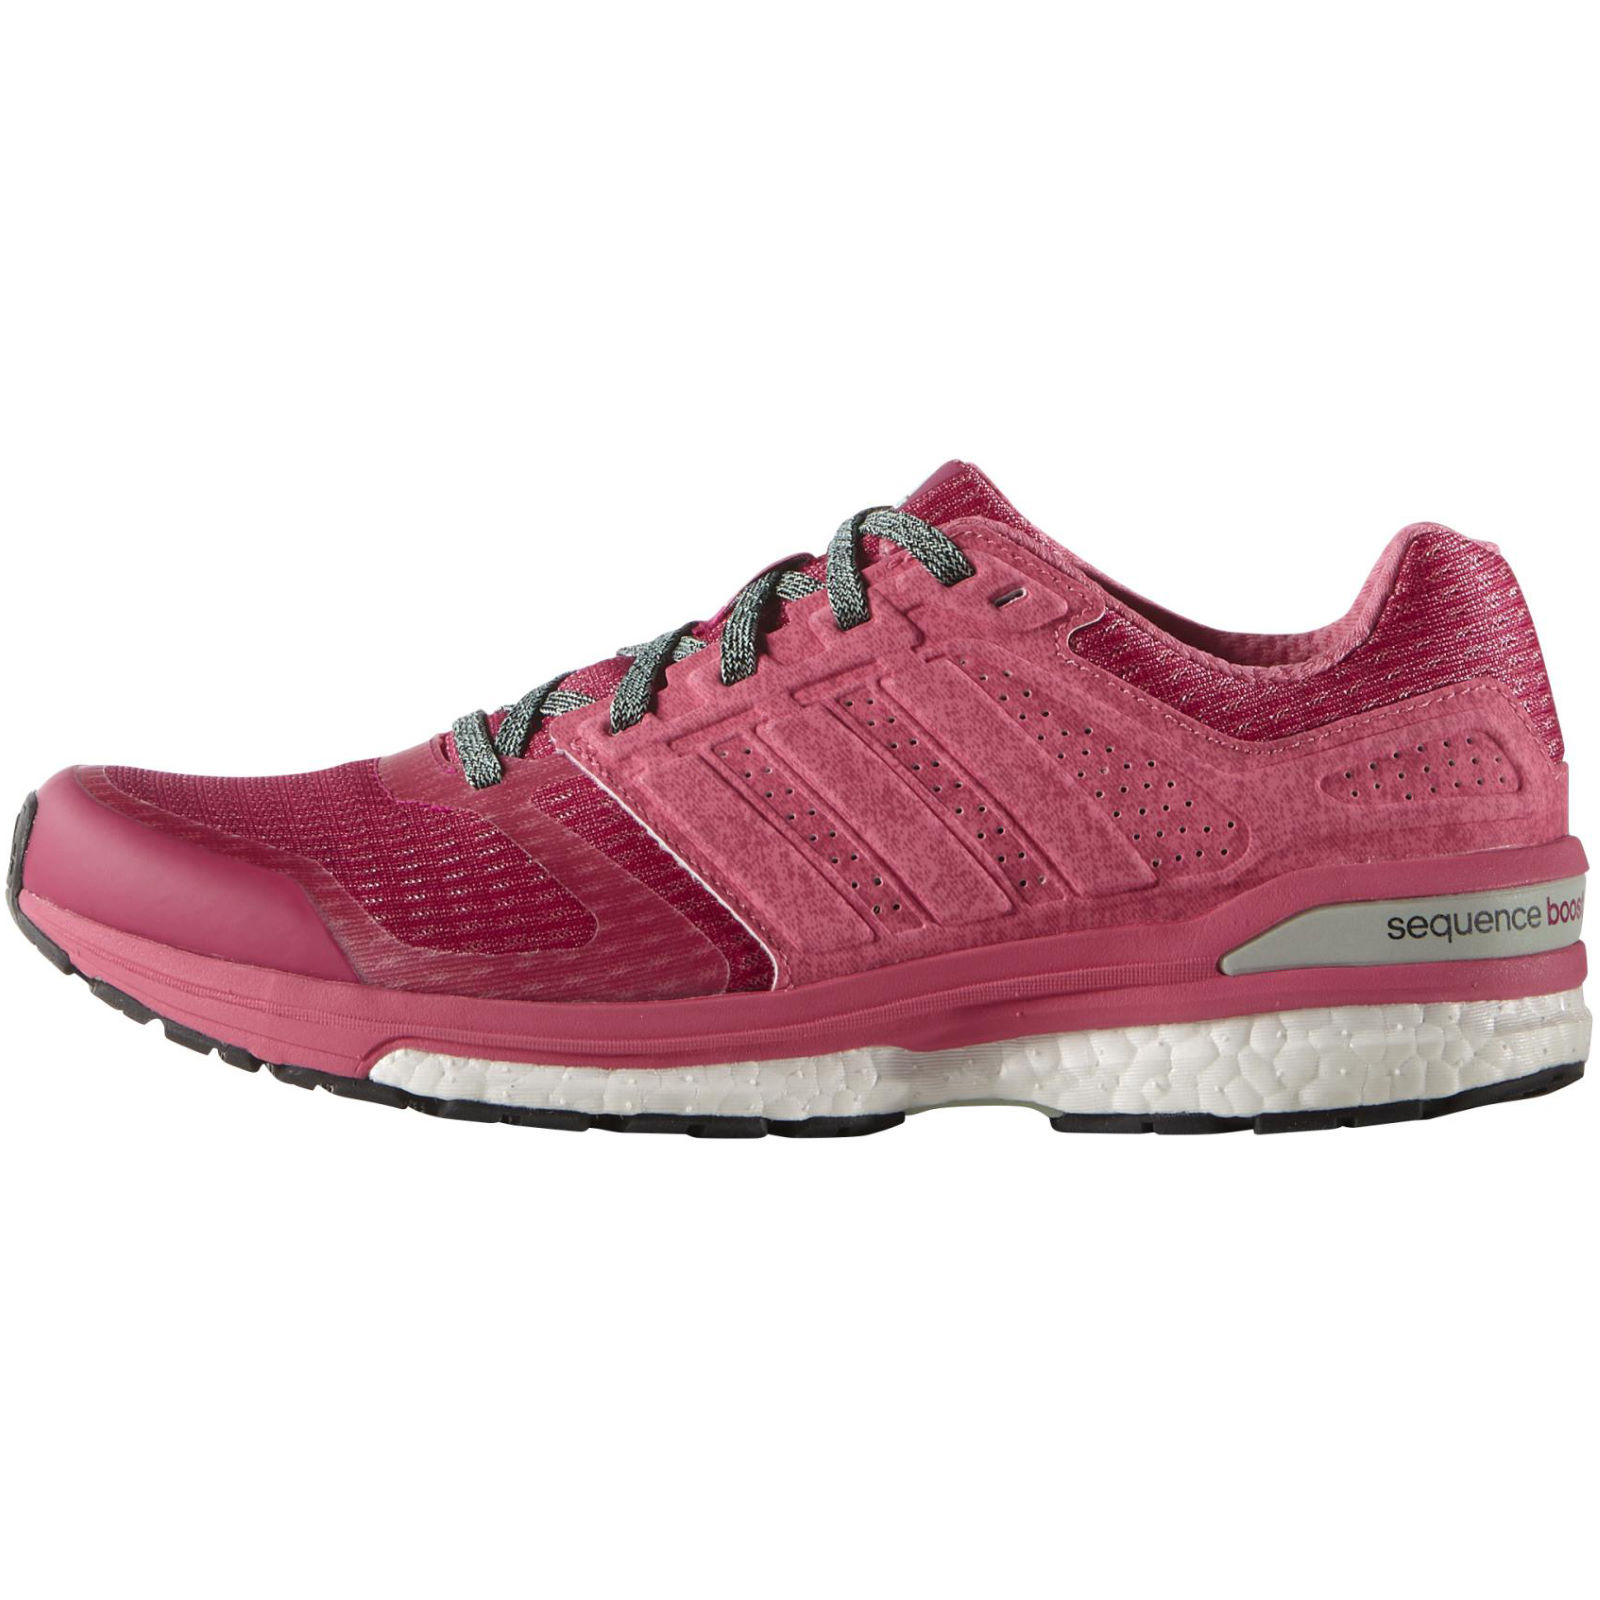 Wiggle | Adidas Women's Supernova Sequence Boost 8 Shoes